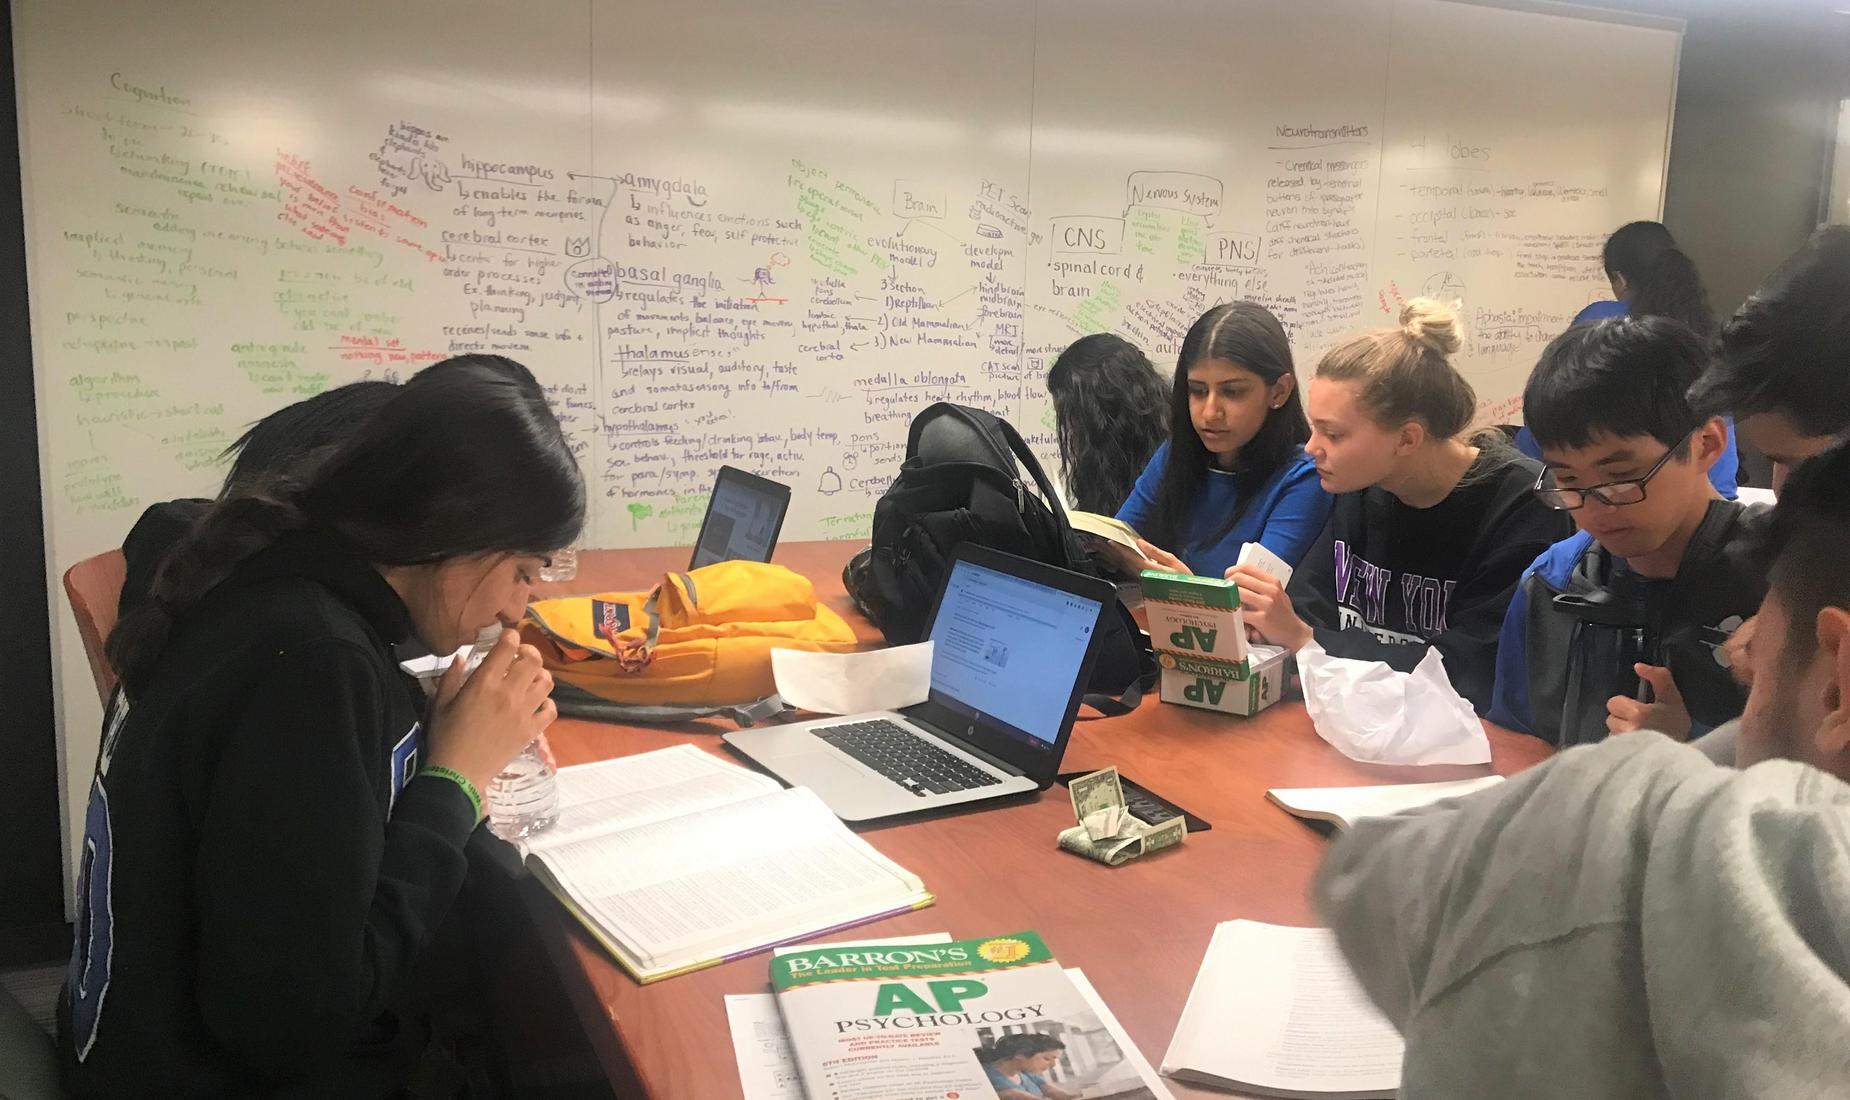 Girls and guys in AP Psychology prepping for their AP Exam. They are sitting at a table, notes all over the whiteboard. The group collaboration and teamwork is top notch.